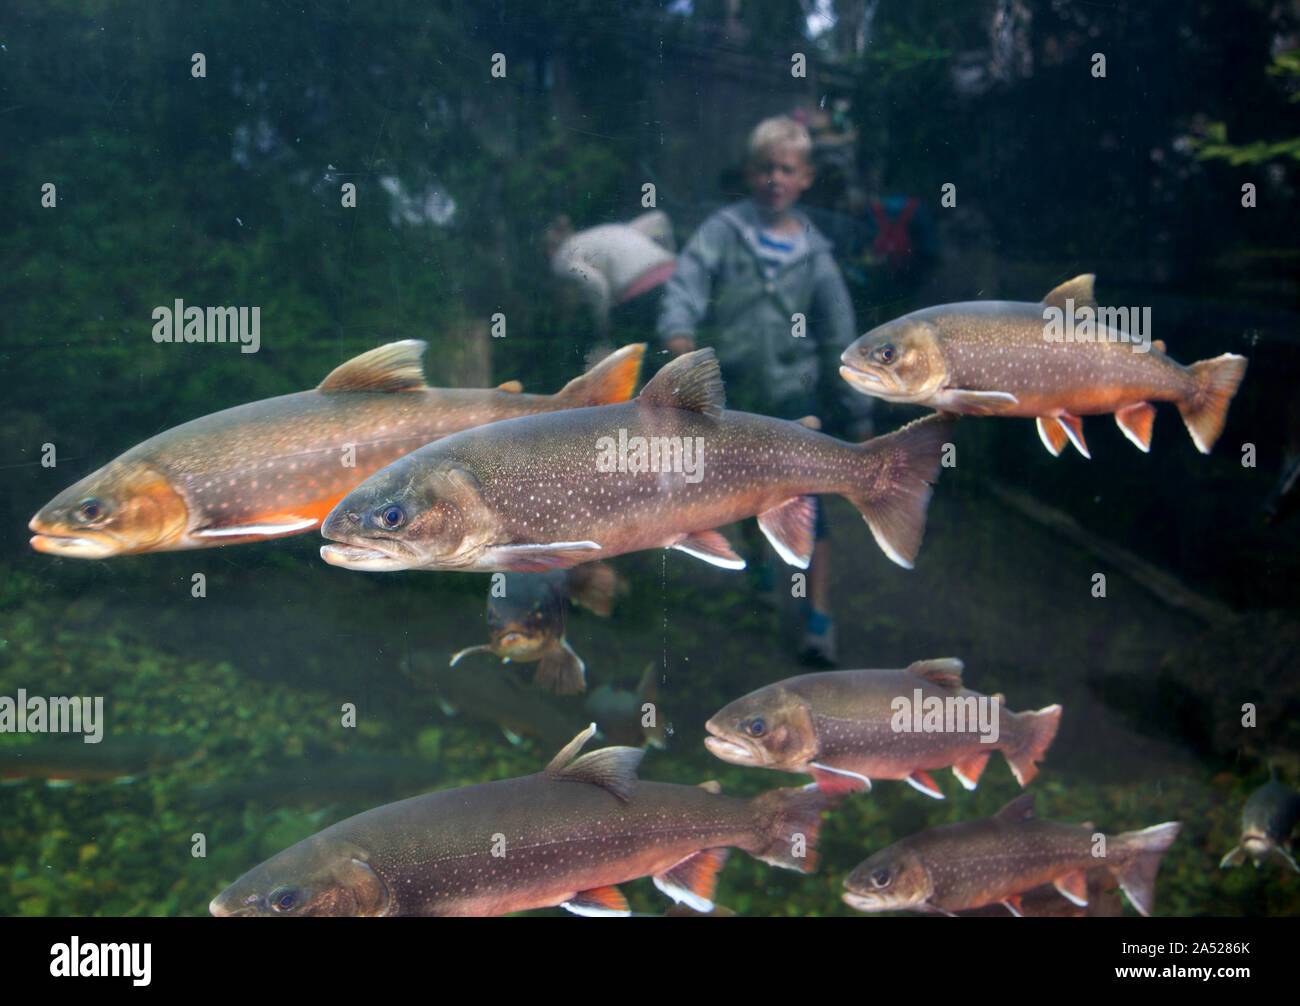 Large trout in water at Universeum, Gothenburg.Photo Jeppe Gustafsson Stock Photo